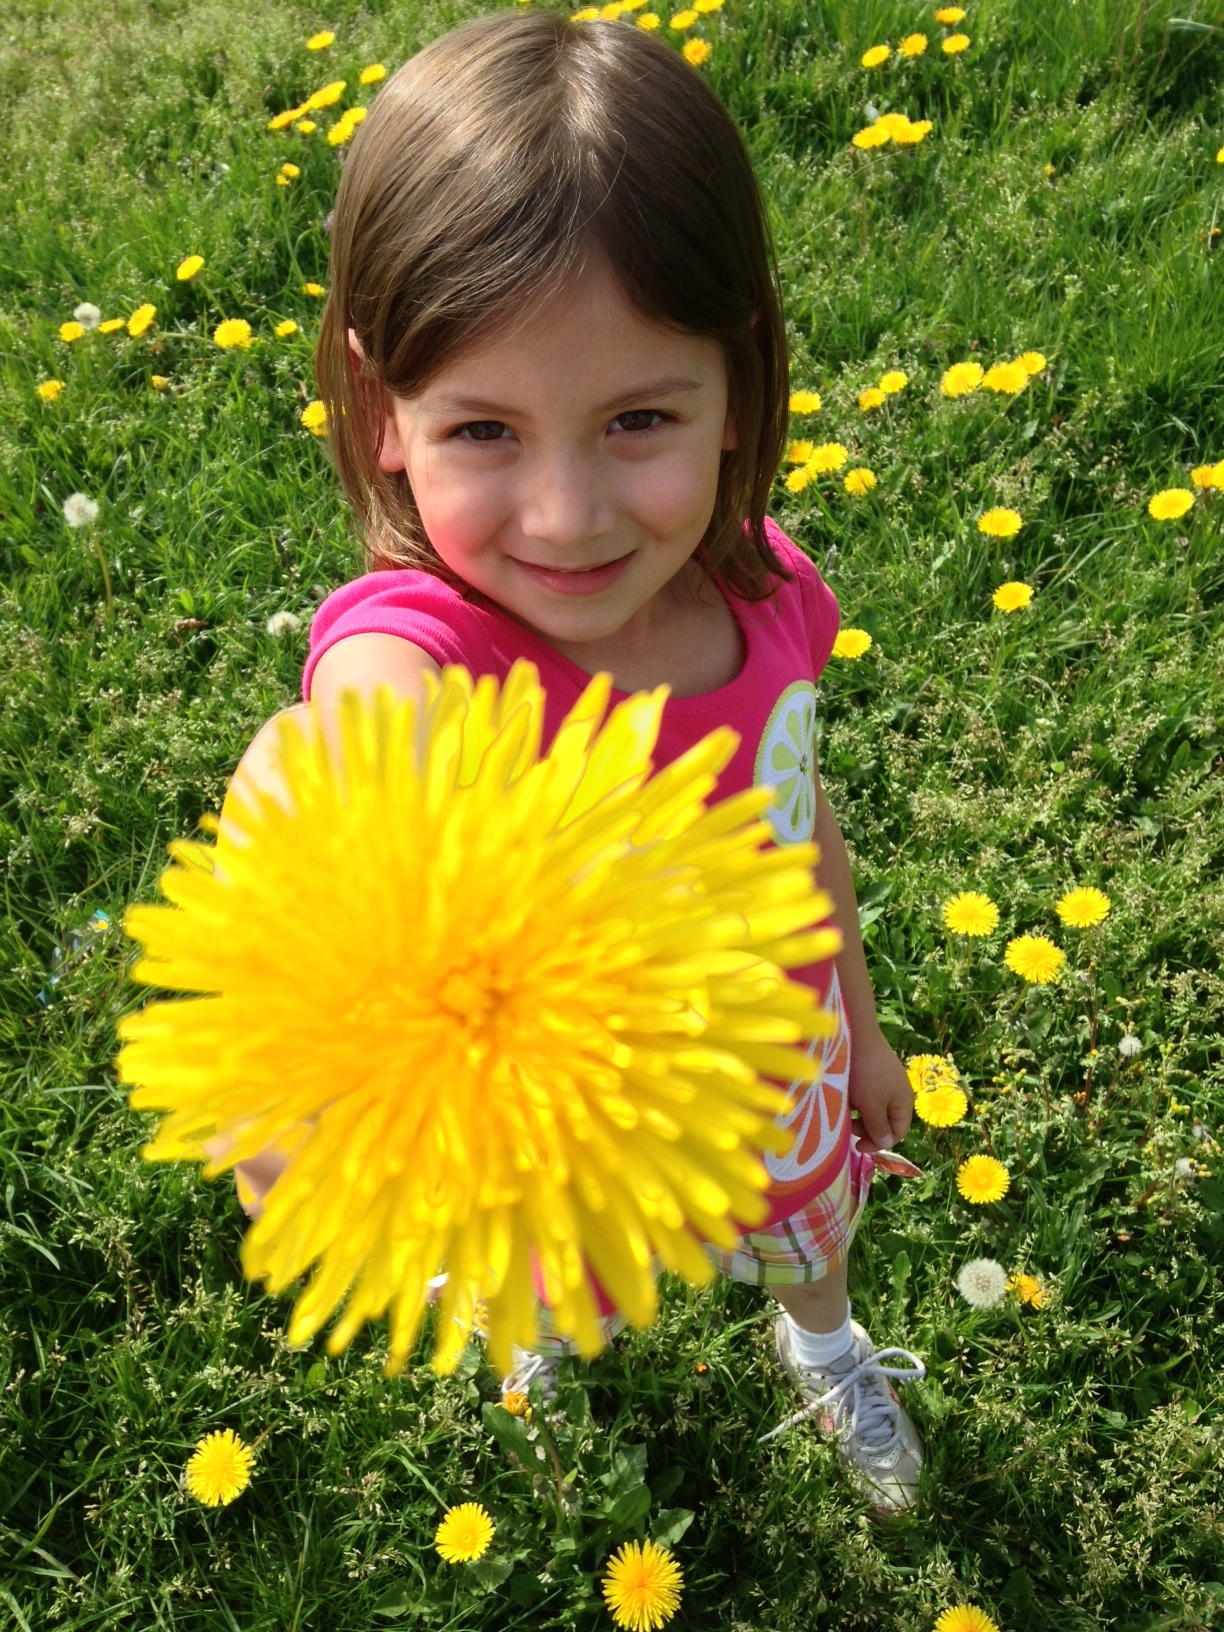 My daughter holding up a dandelion ( pissenlit ) in a field near our home